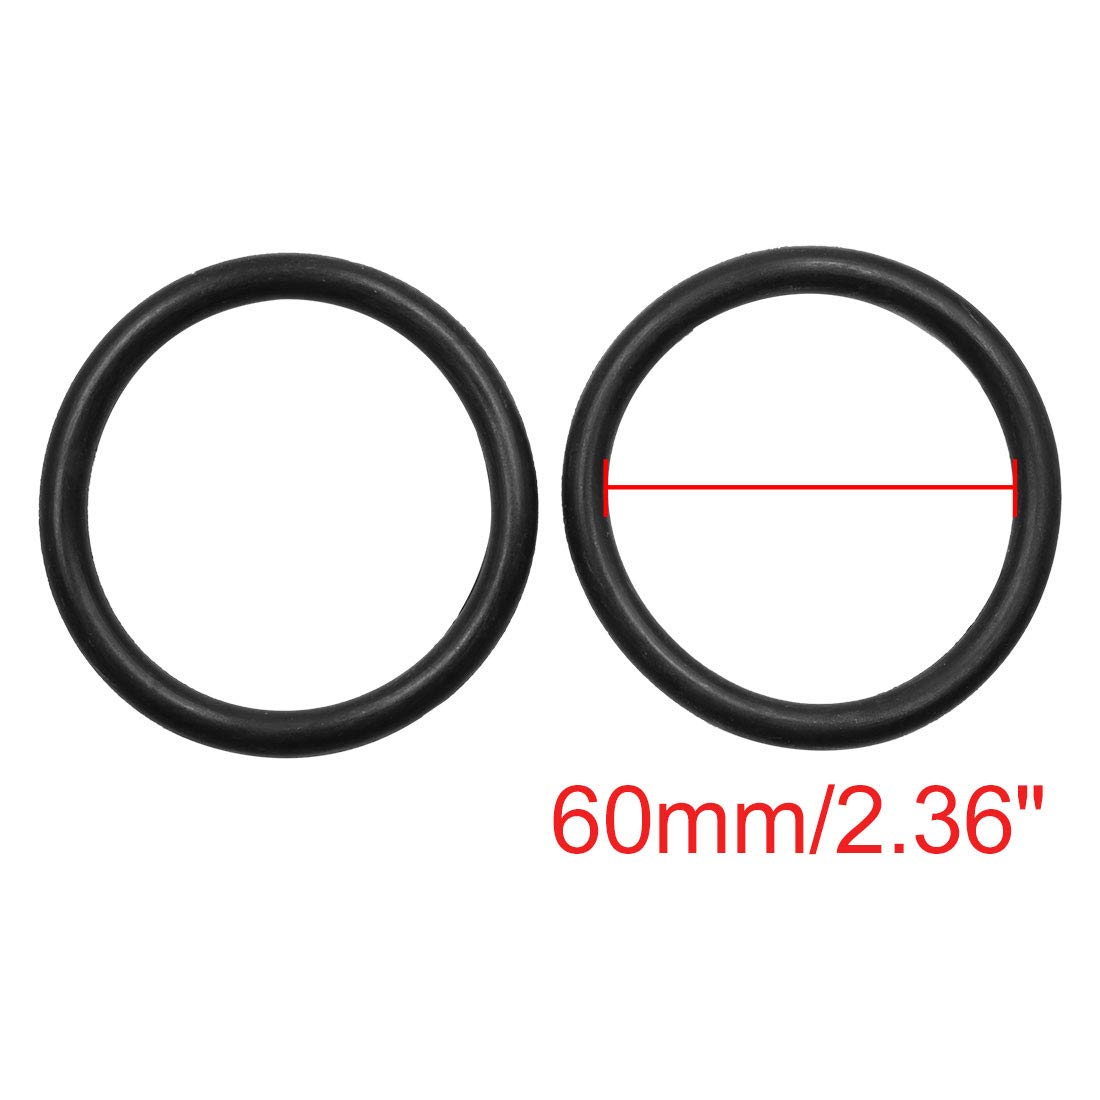 X AUTOHAUX 10pcs Black NBR O-Ring Seal Gasket Washer for Car 60mm x 7mm